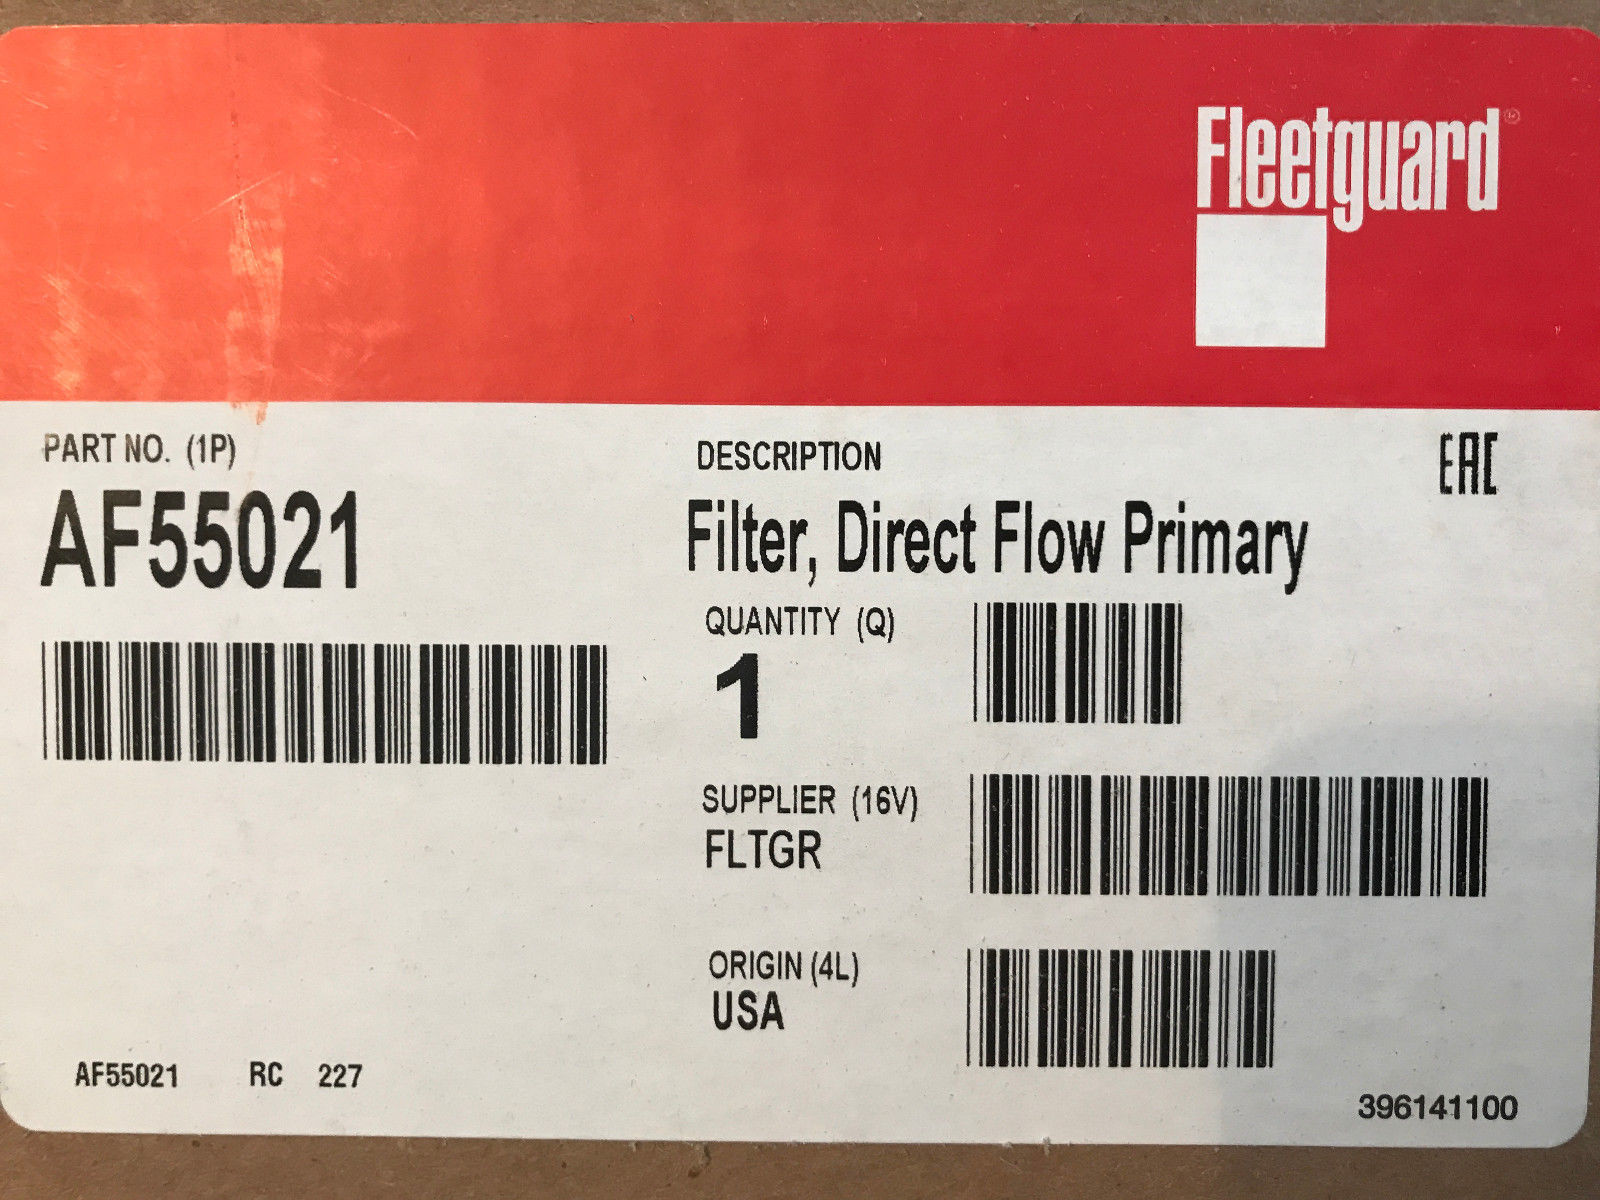 (LOT OF 2) AF55021 FLEETGUARD AIR FILTER 1600-3I QSB 4.5 Cummins 700738183 5288553 70024175